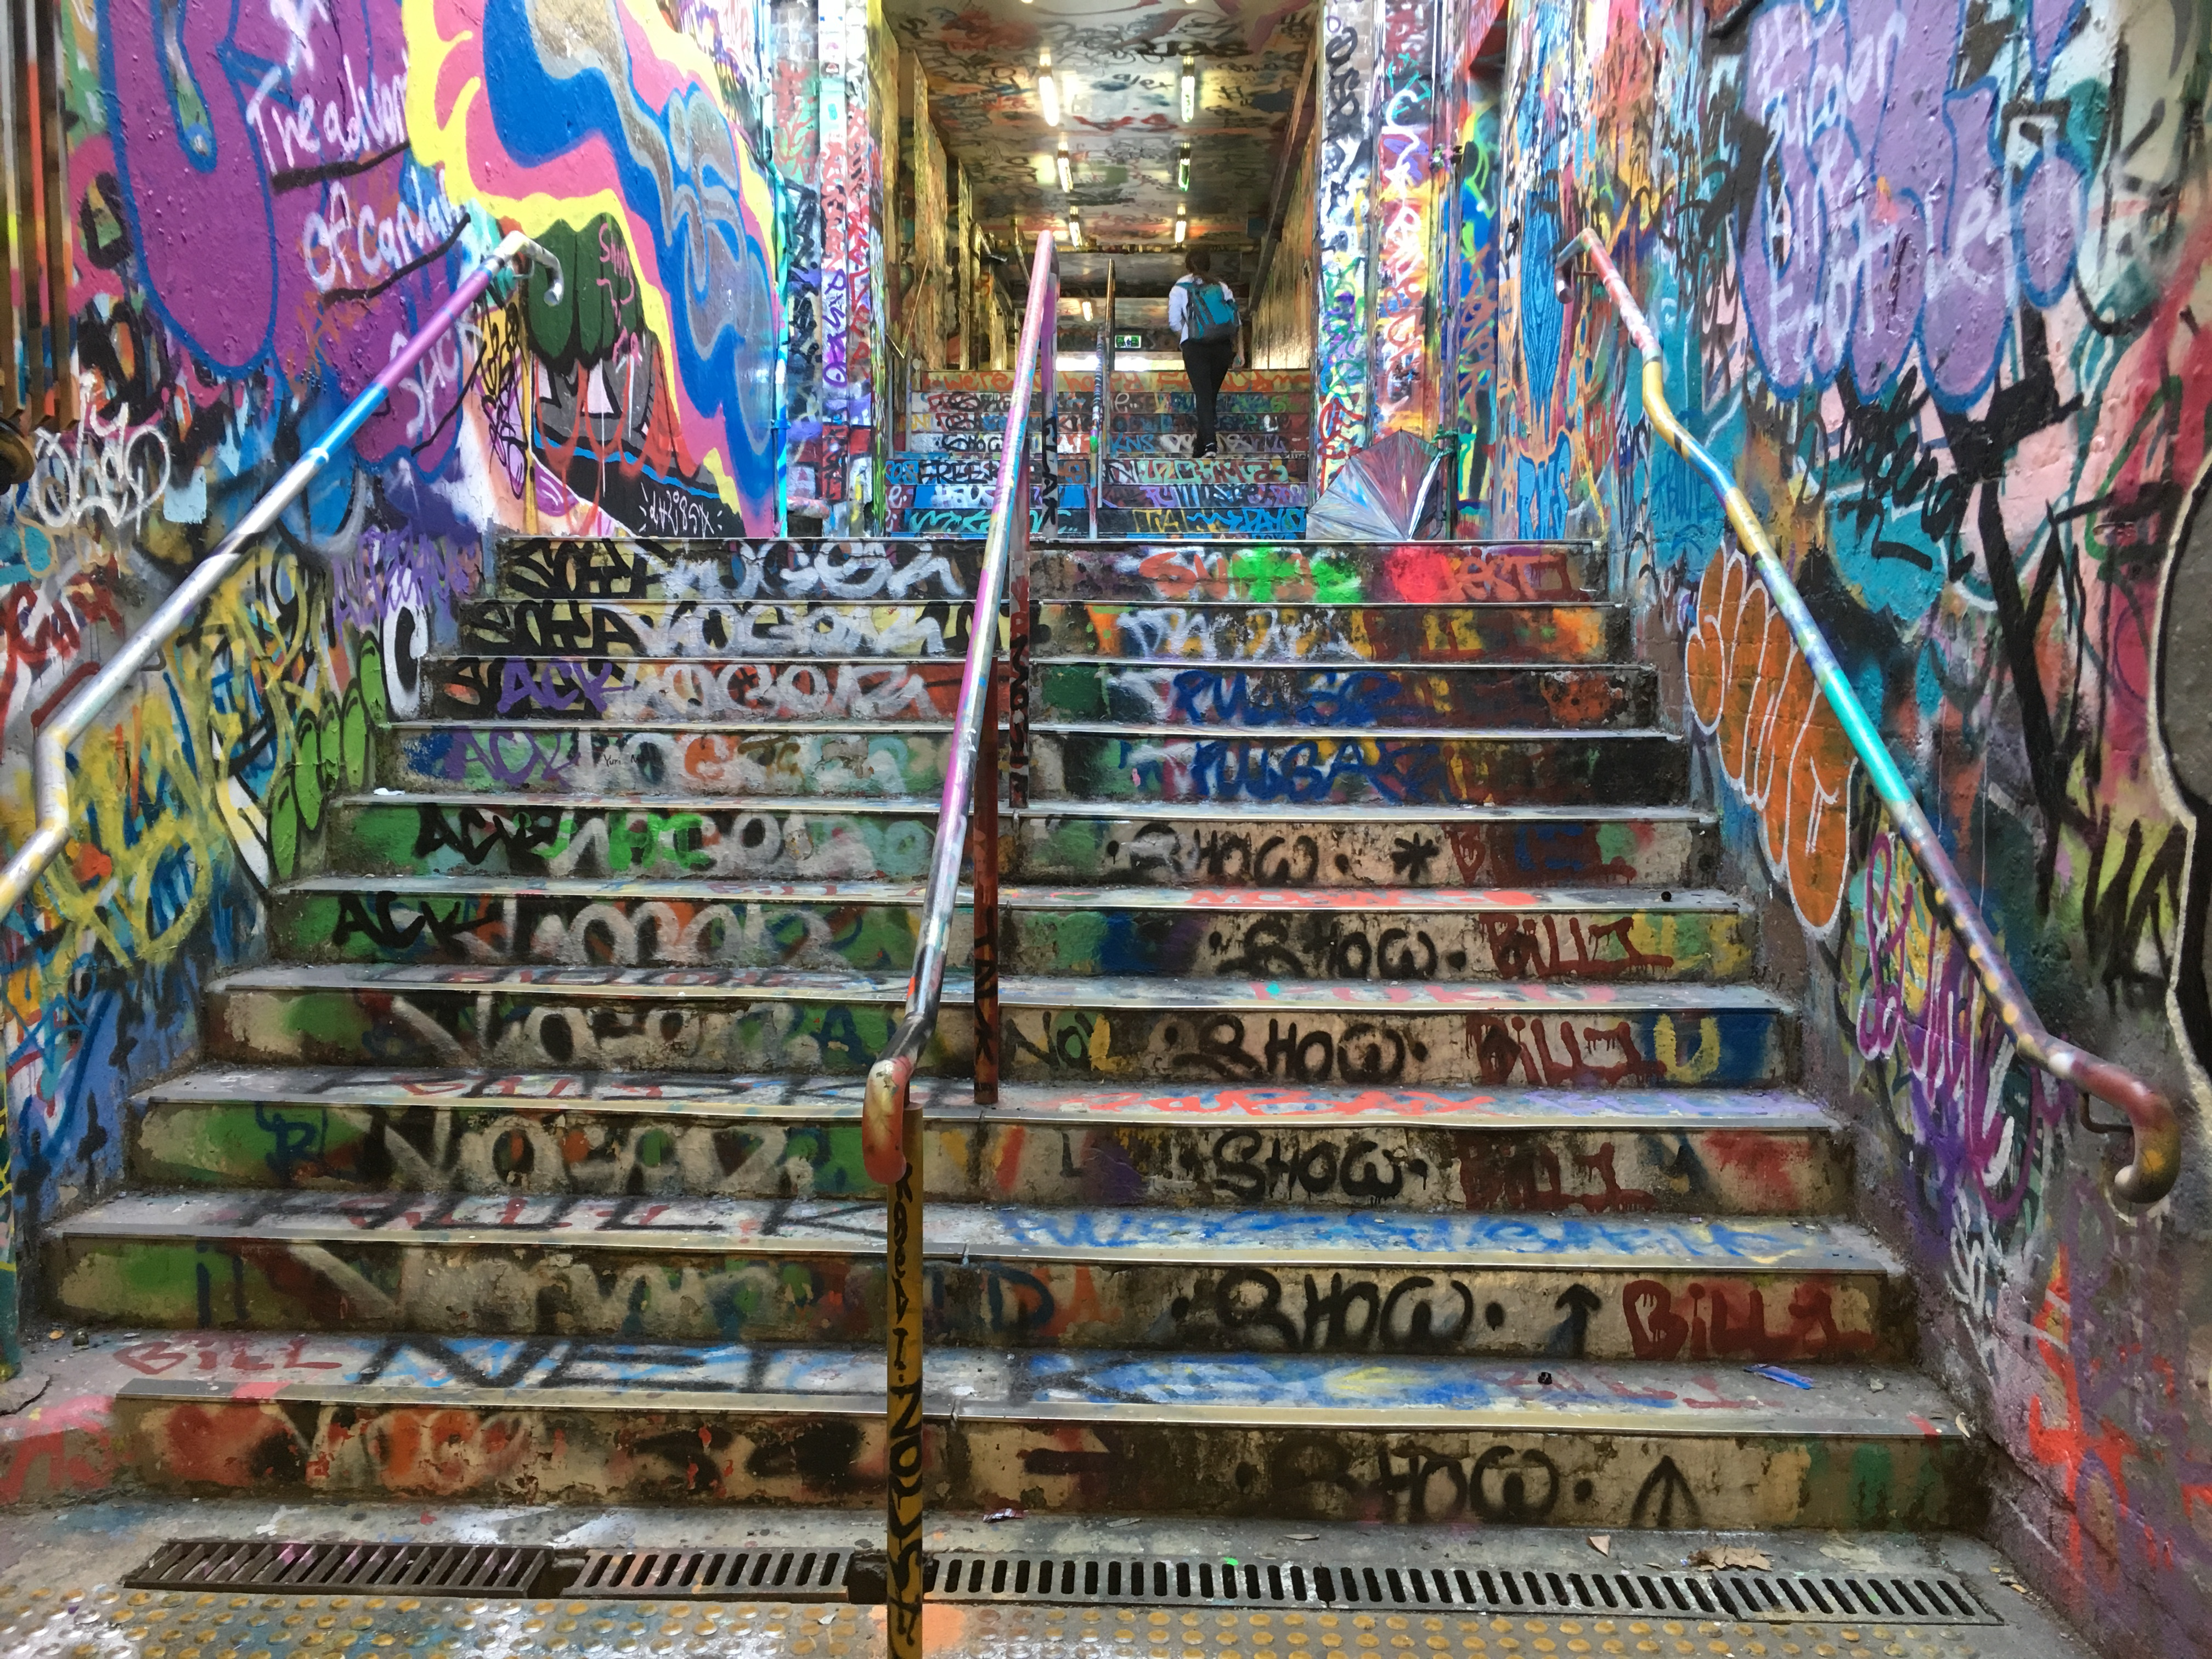 Stairs inside the graffiti tunnel